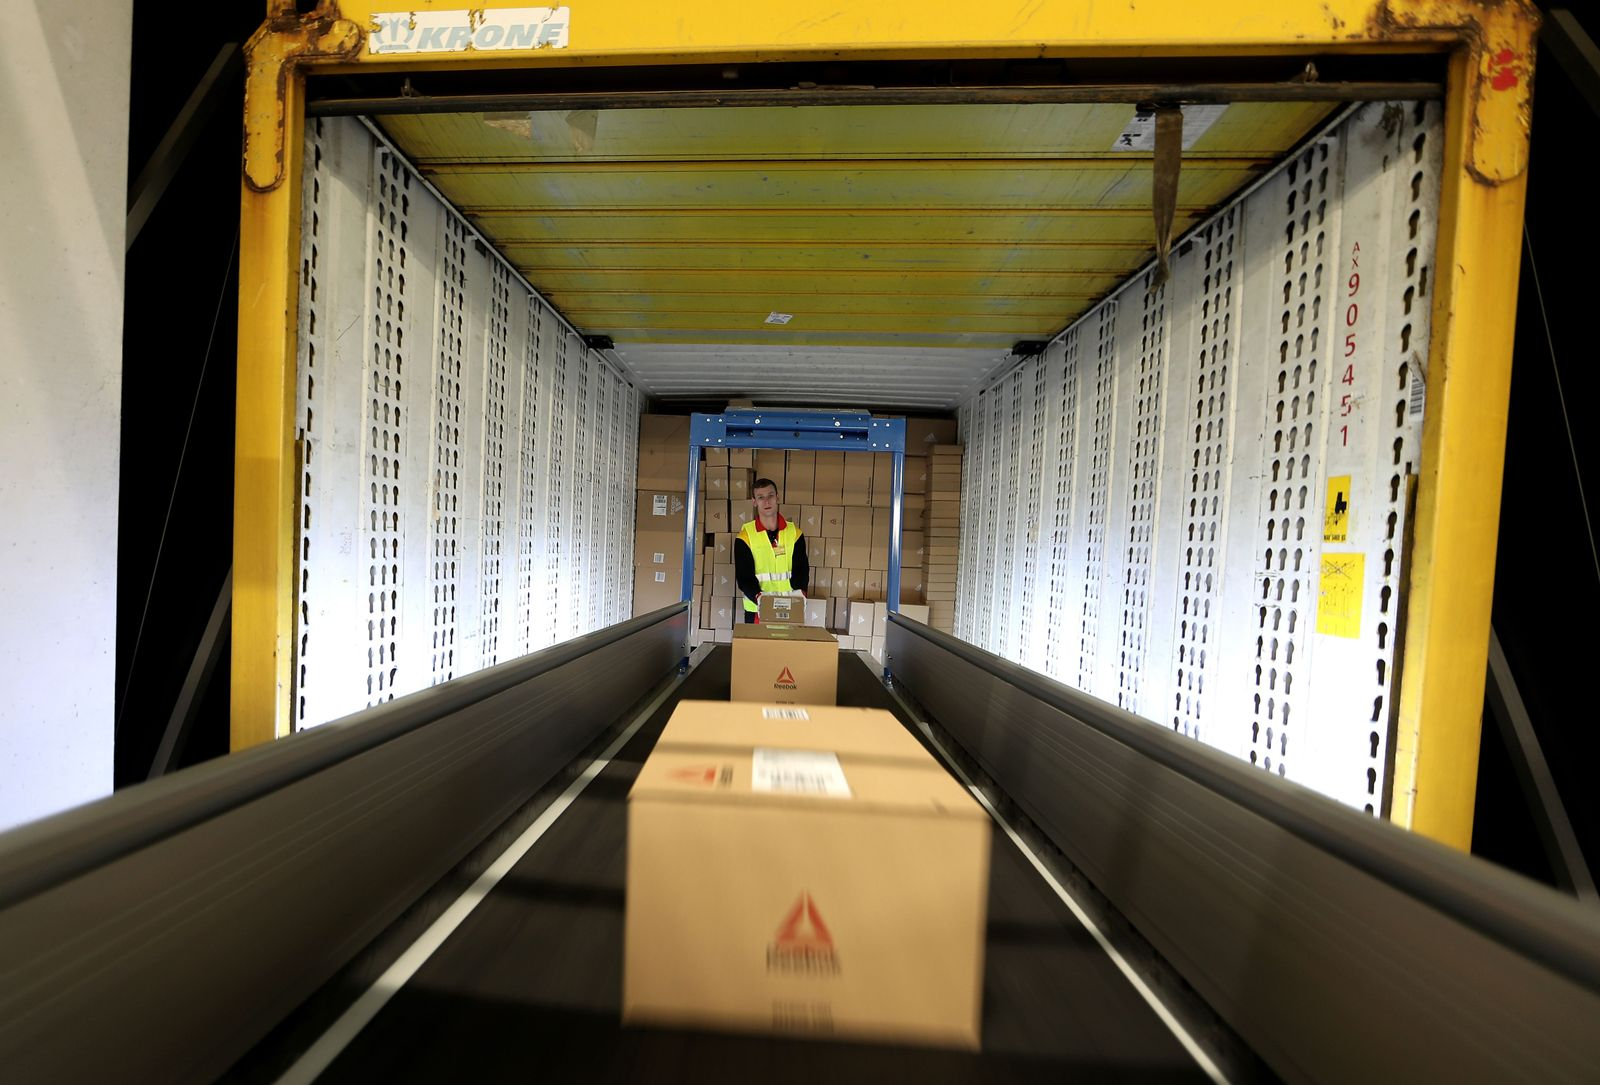 Deutsche Post DHL opens new mega parcel centre in Bochum